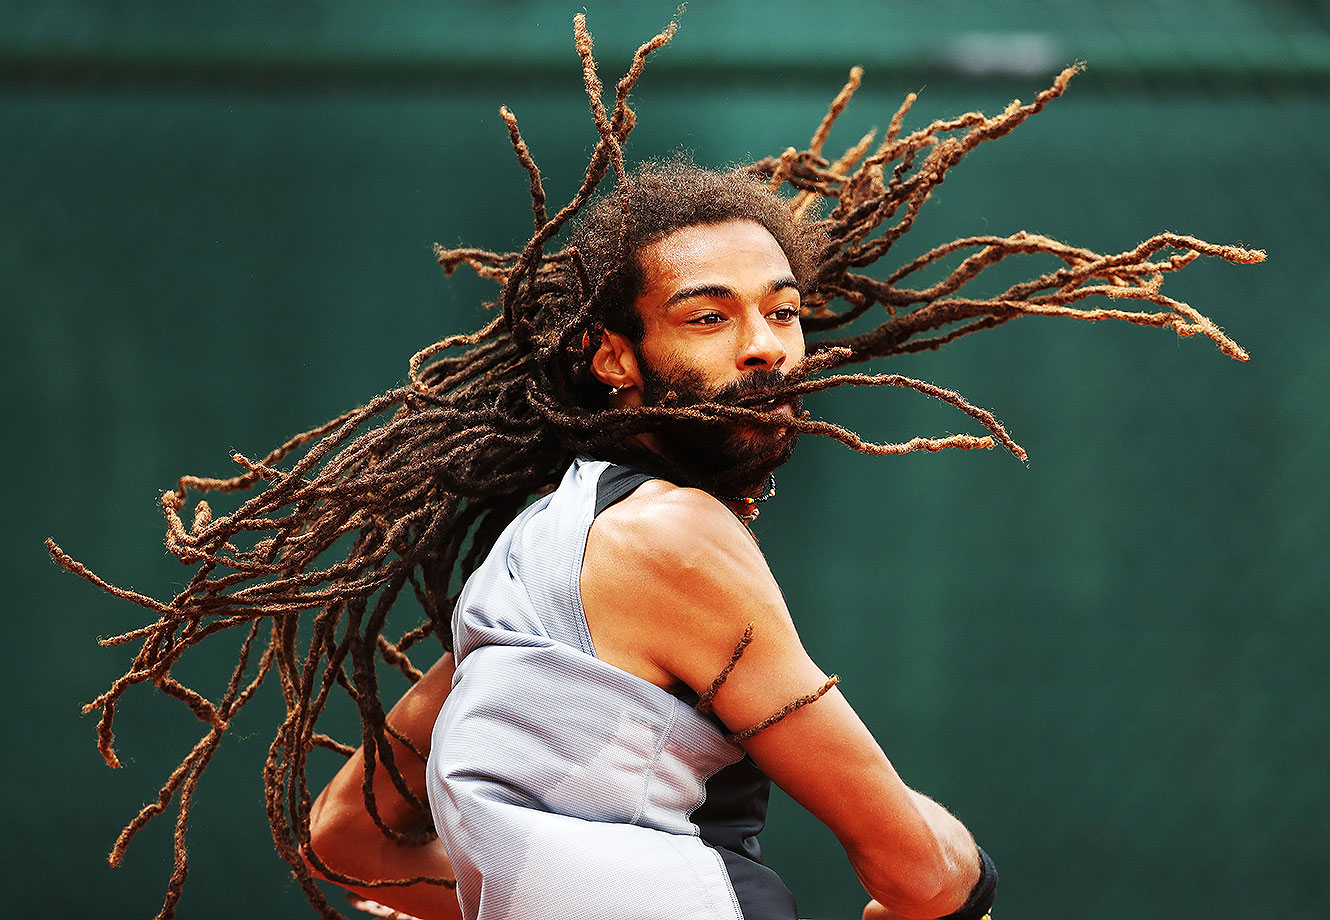 Dustin Brown of Germany plays a shot during the Men's Singles Second Round match against Jack Sock of United States on Day Four of the 2016 French Open at Roland Garros on May 25, 2016 in Paris, France.